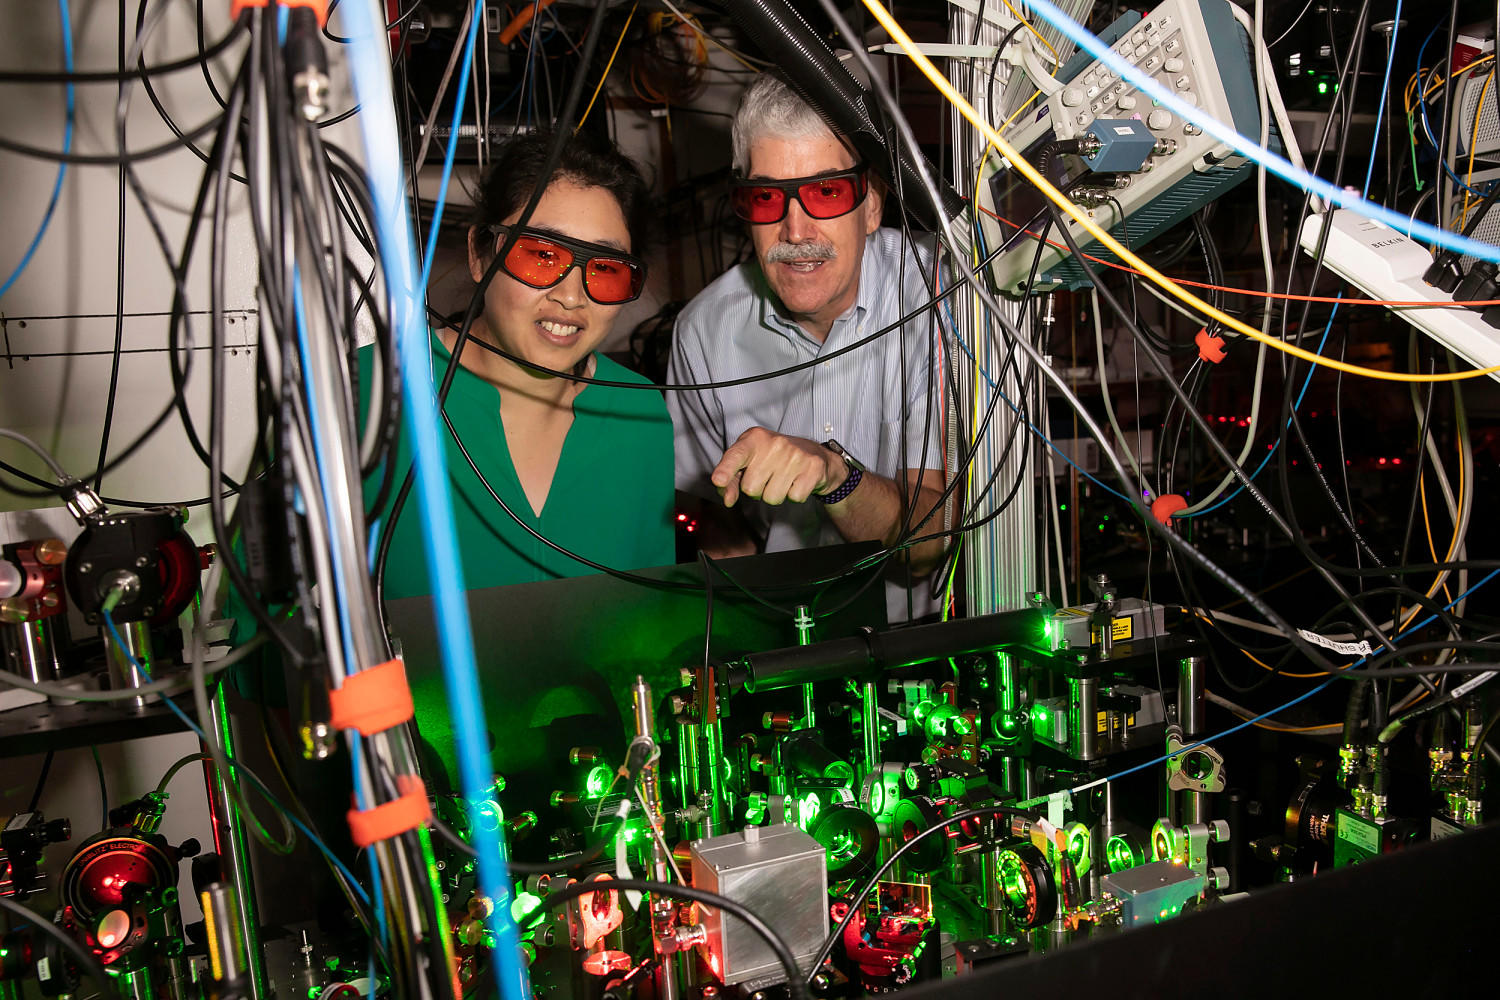 Kang-Kuen Ni (left) and John Doyle use precisely focused lasers as optical tweezers